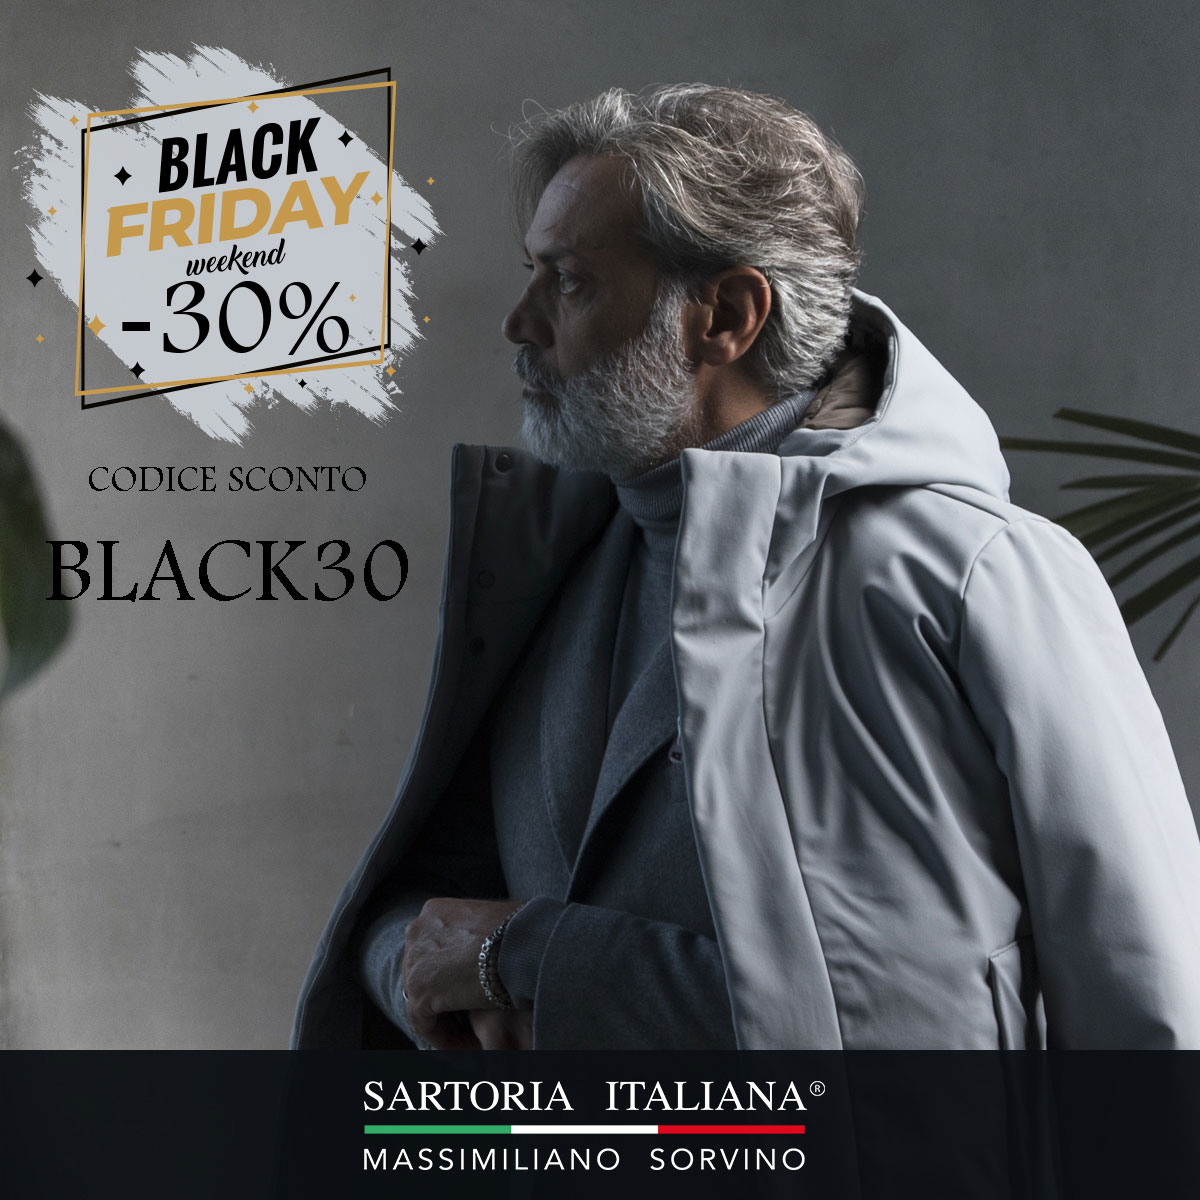 black friday-sartoria italiana-massimiliano sorvino